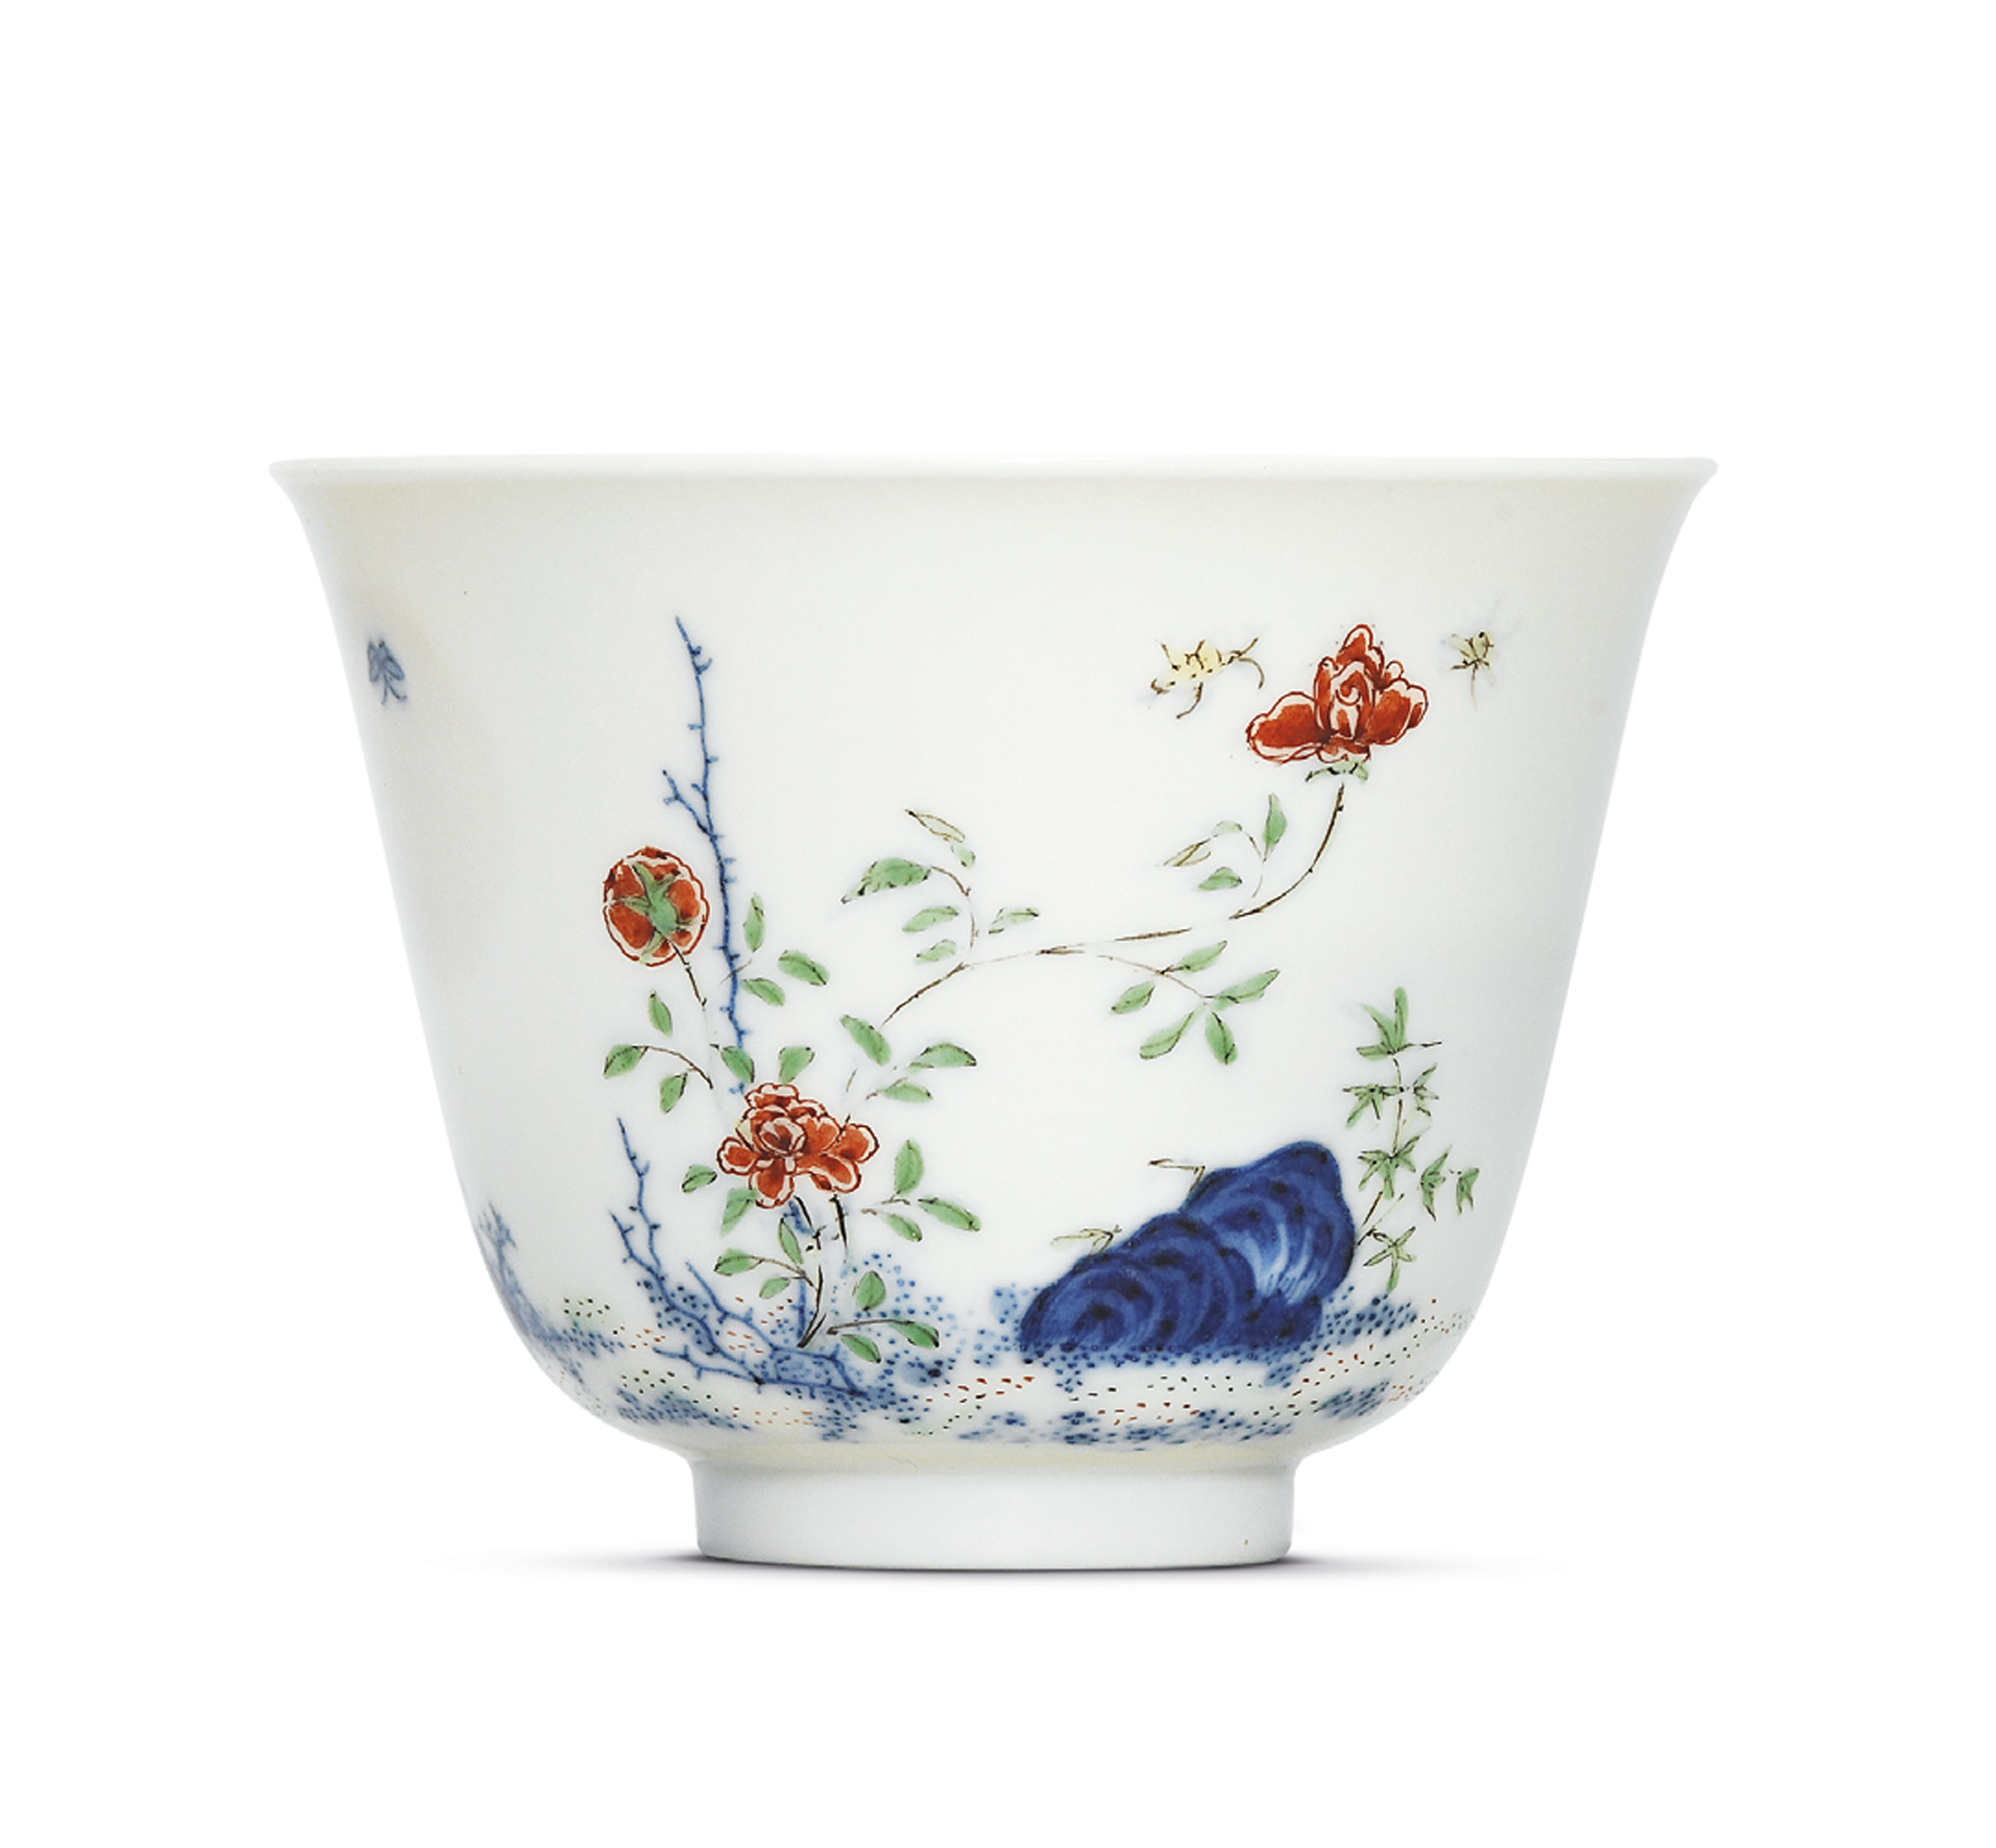 A FAMILLE VERTE 'ROSE BLOSSOM' MONTH CUP